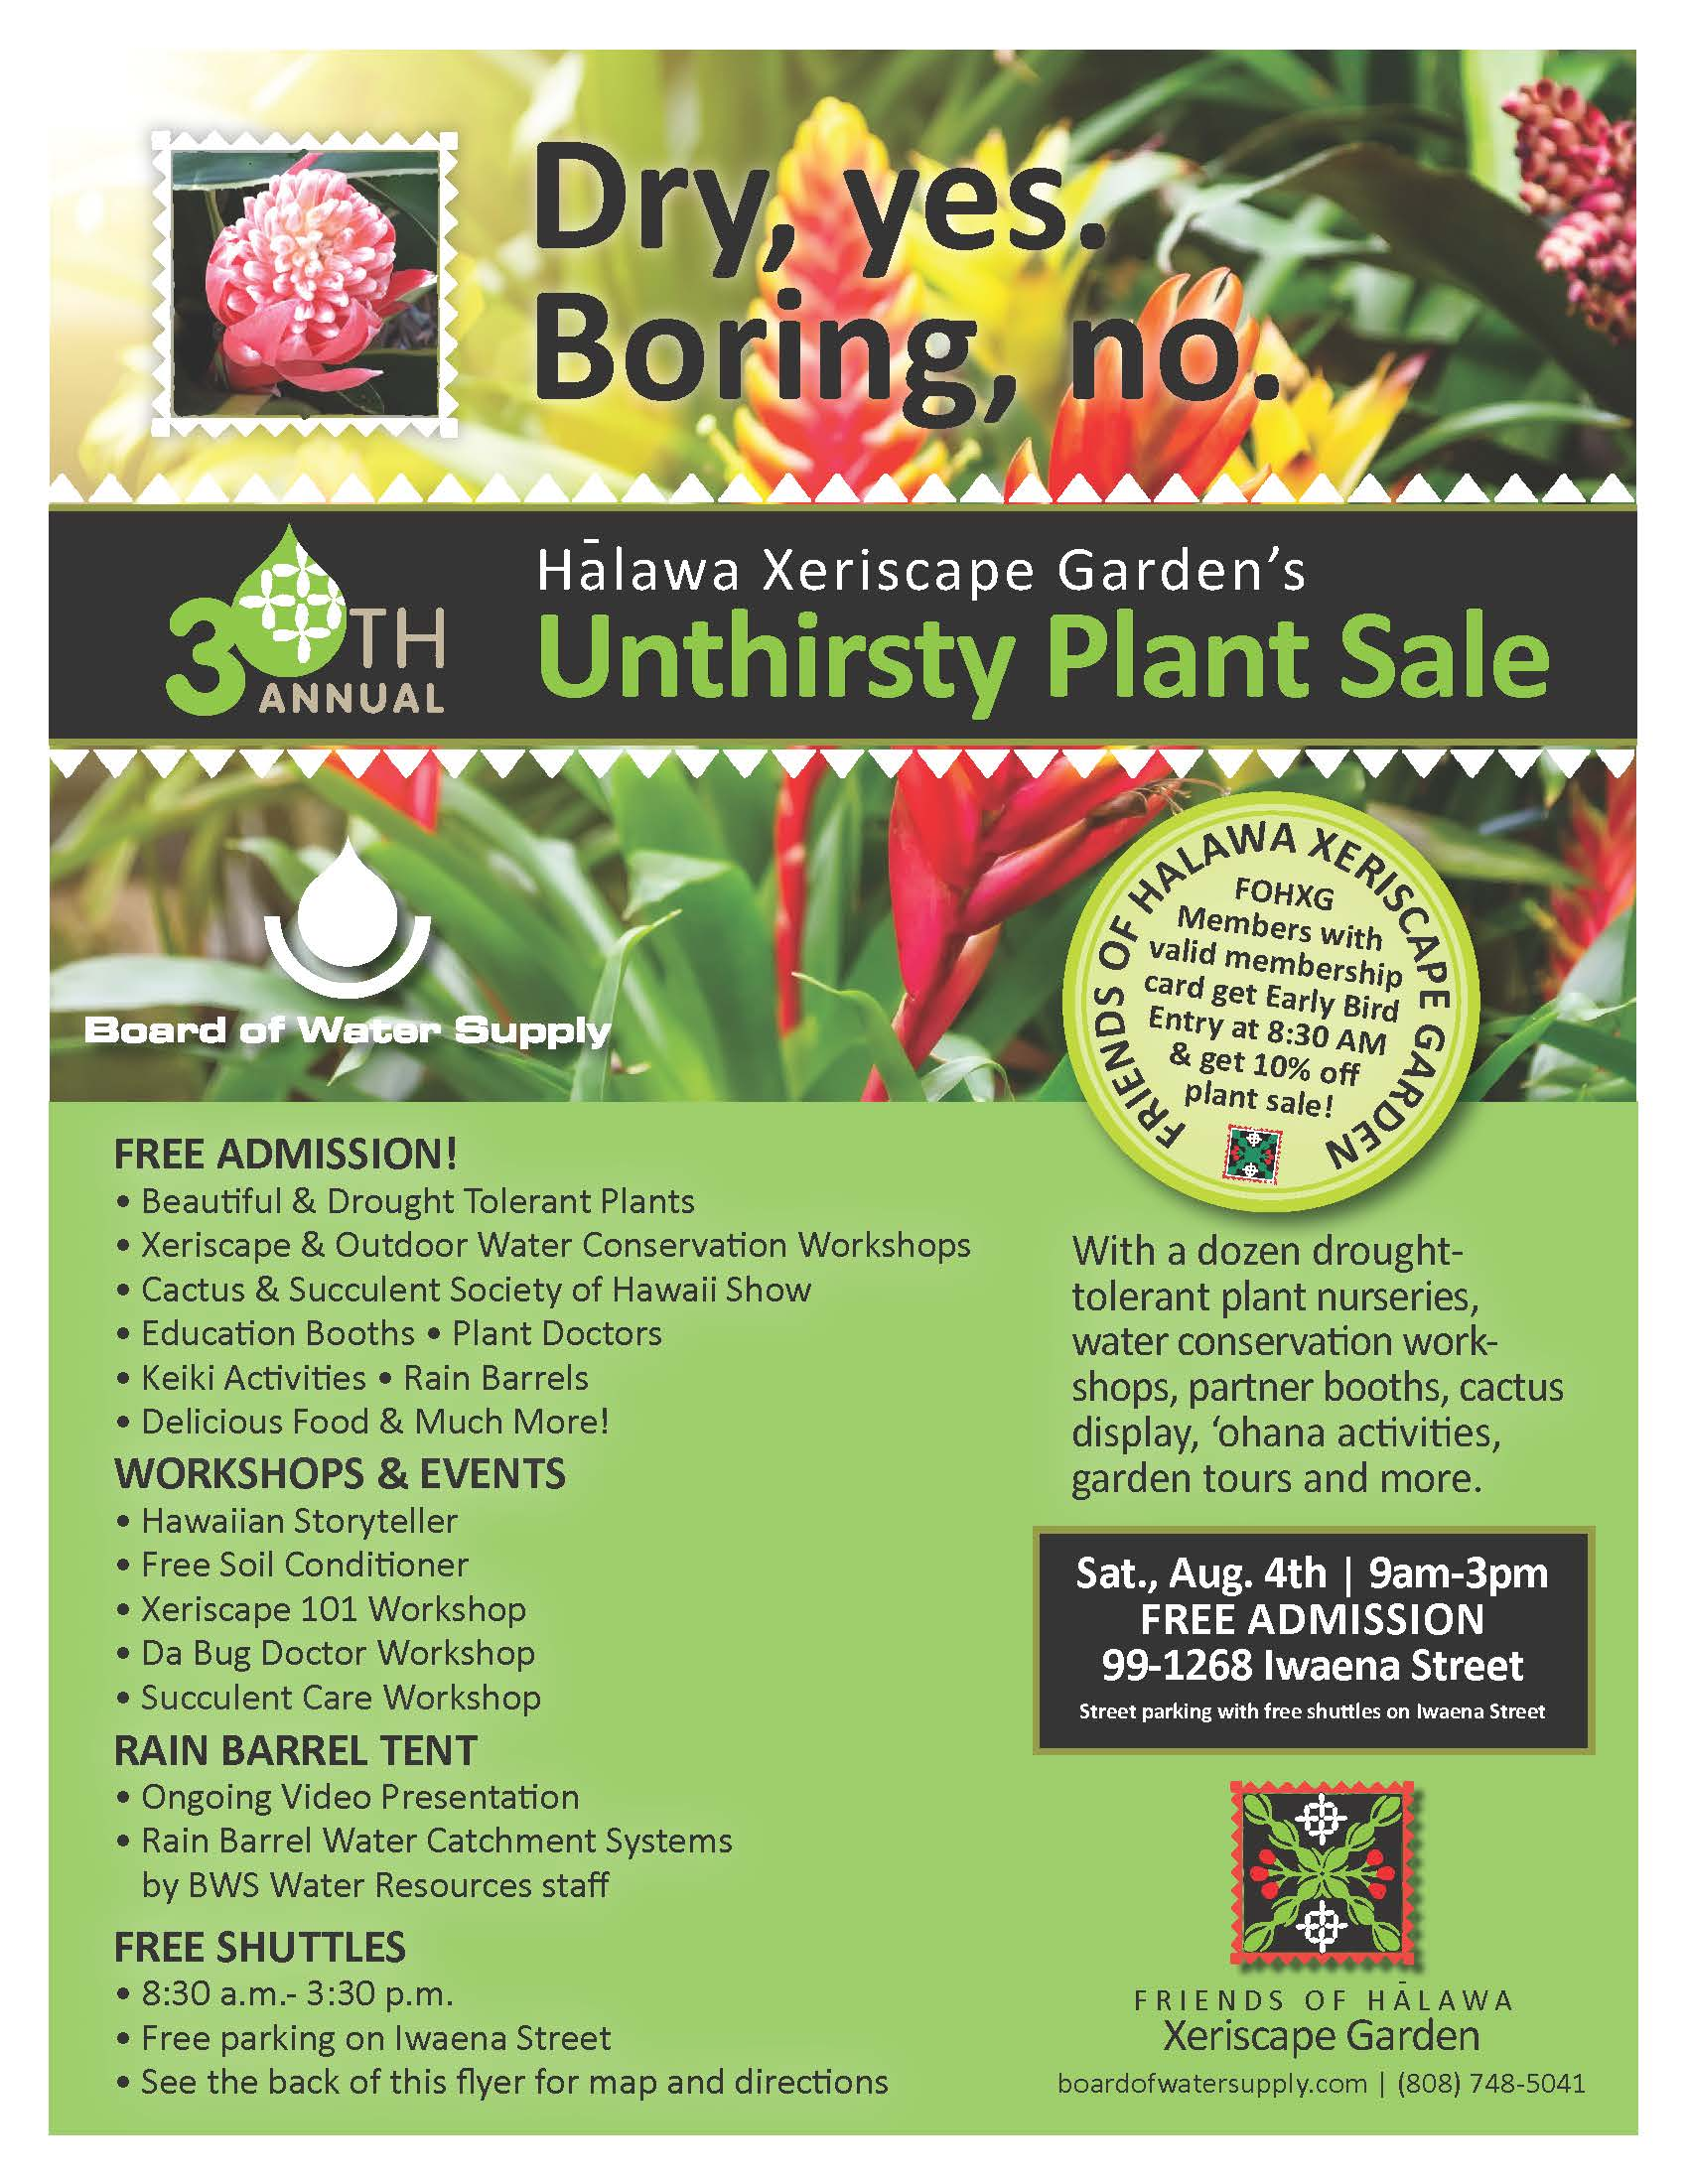 30th halawa xeriscape garden open house and unthirsty plant sale august 4 2018